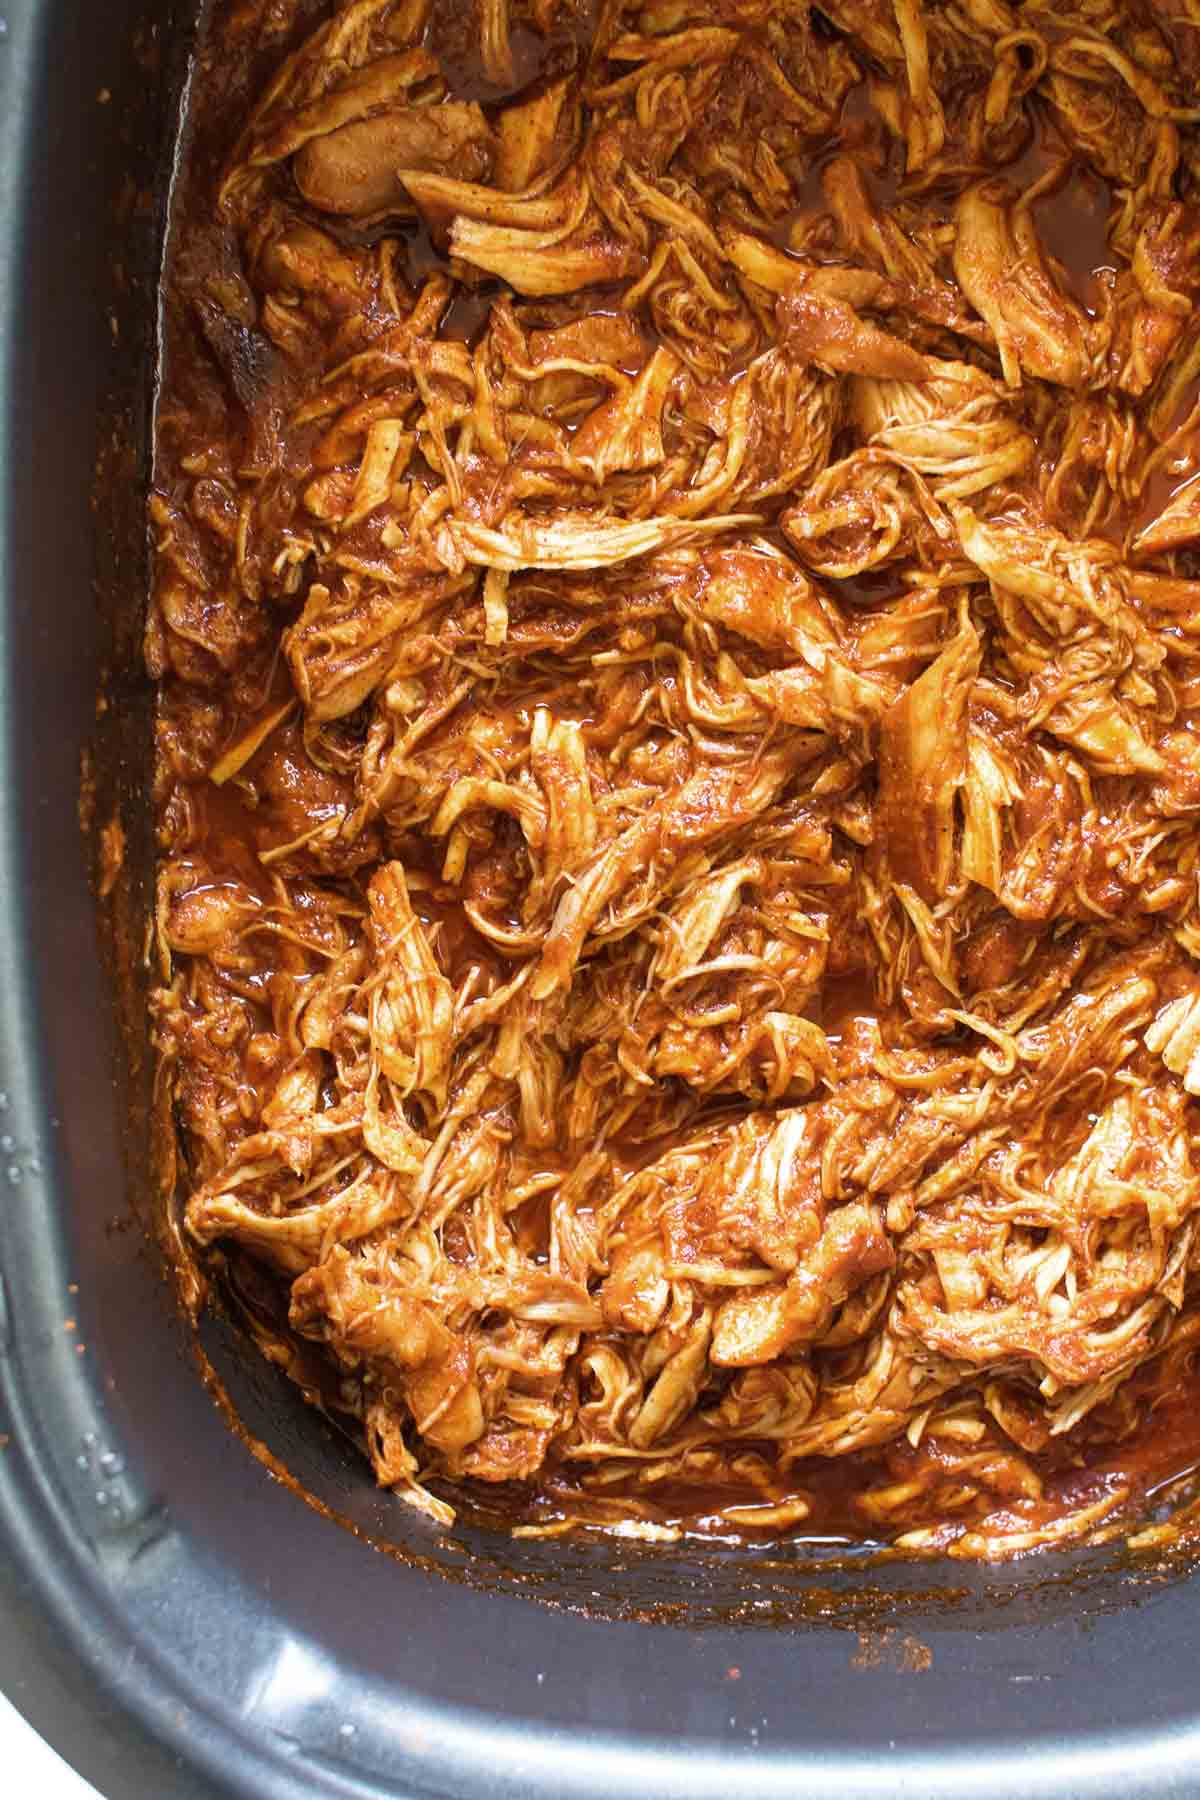 shredded bbq chicken in a slow cooker.